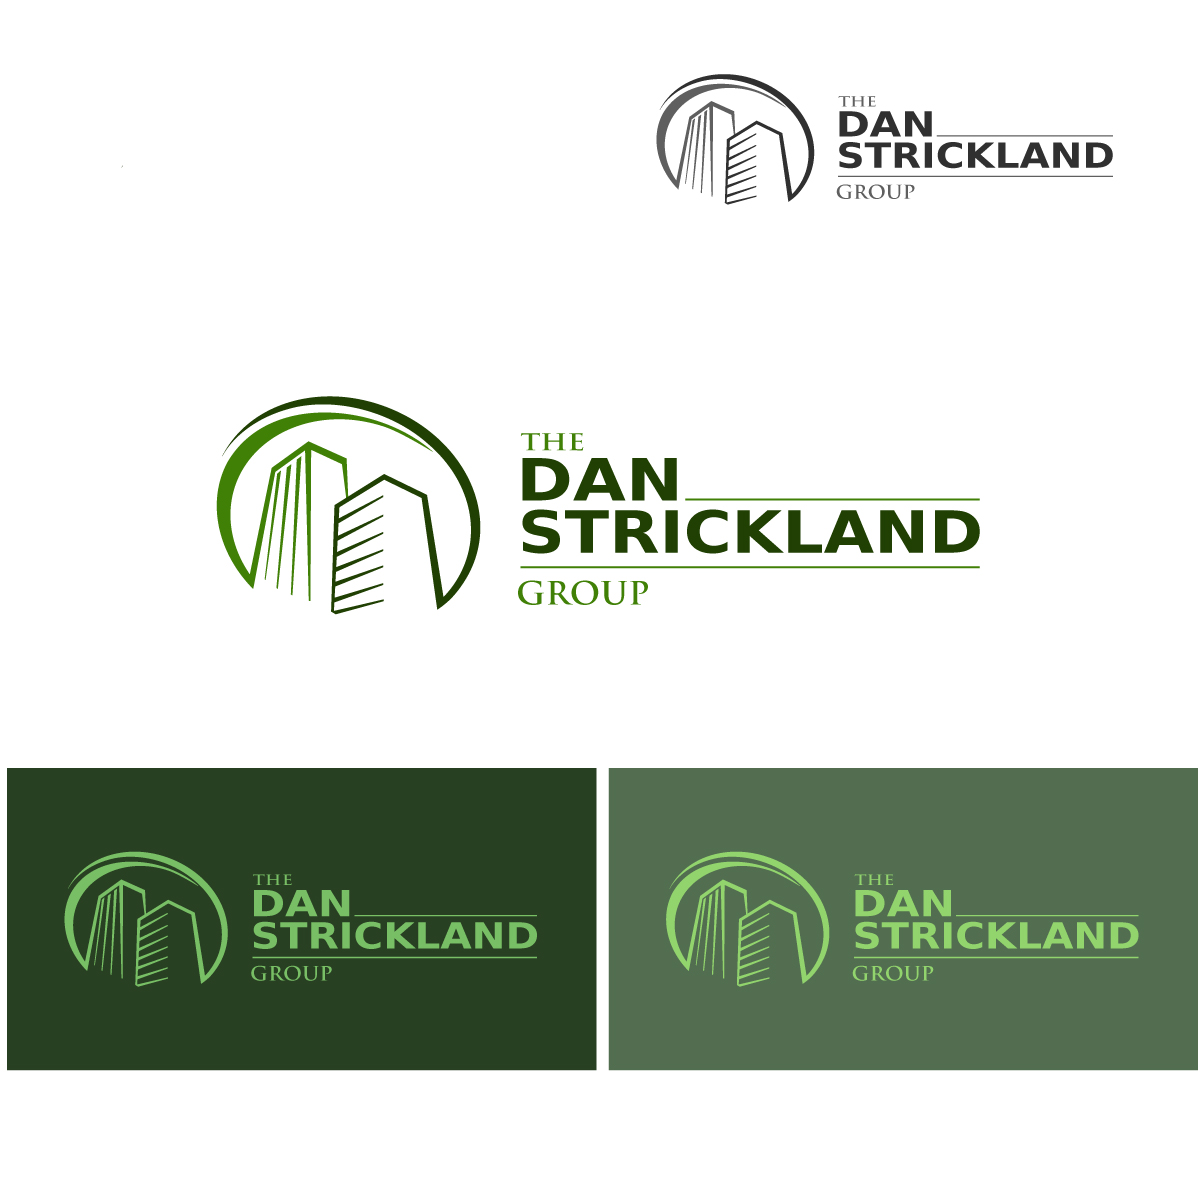 Logo Design by danelav - Entry No. 136 in the Logo Design Contest Creative Logo Design for The Dan Strickland Group.